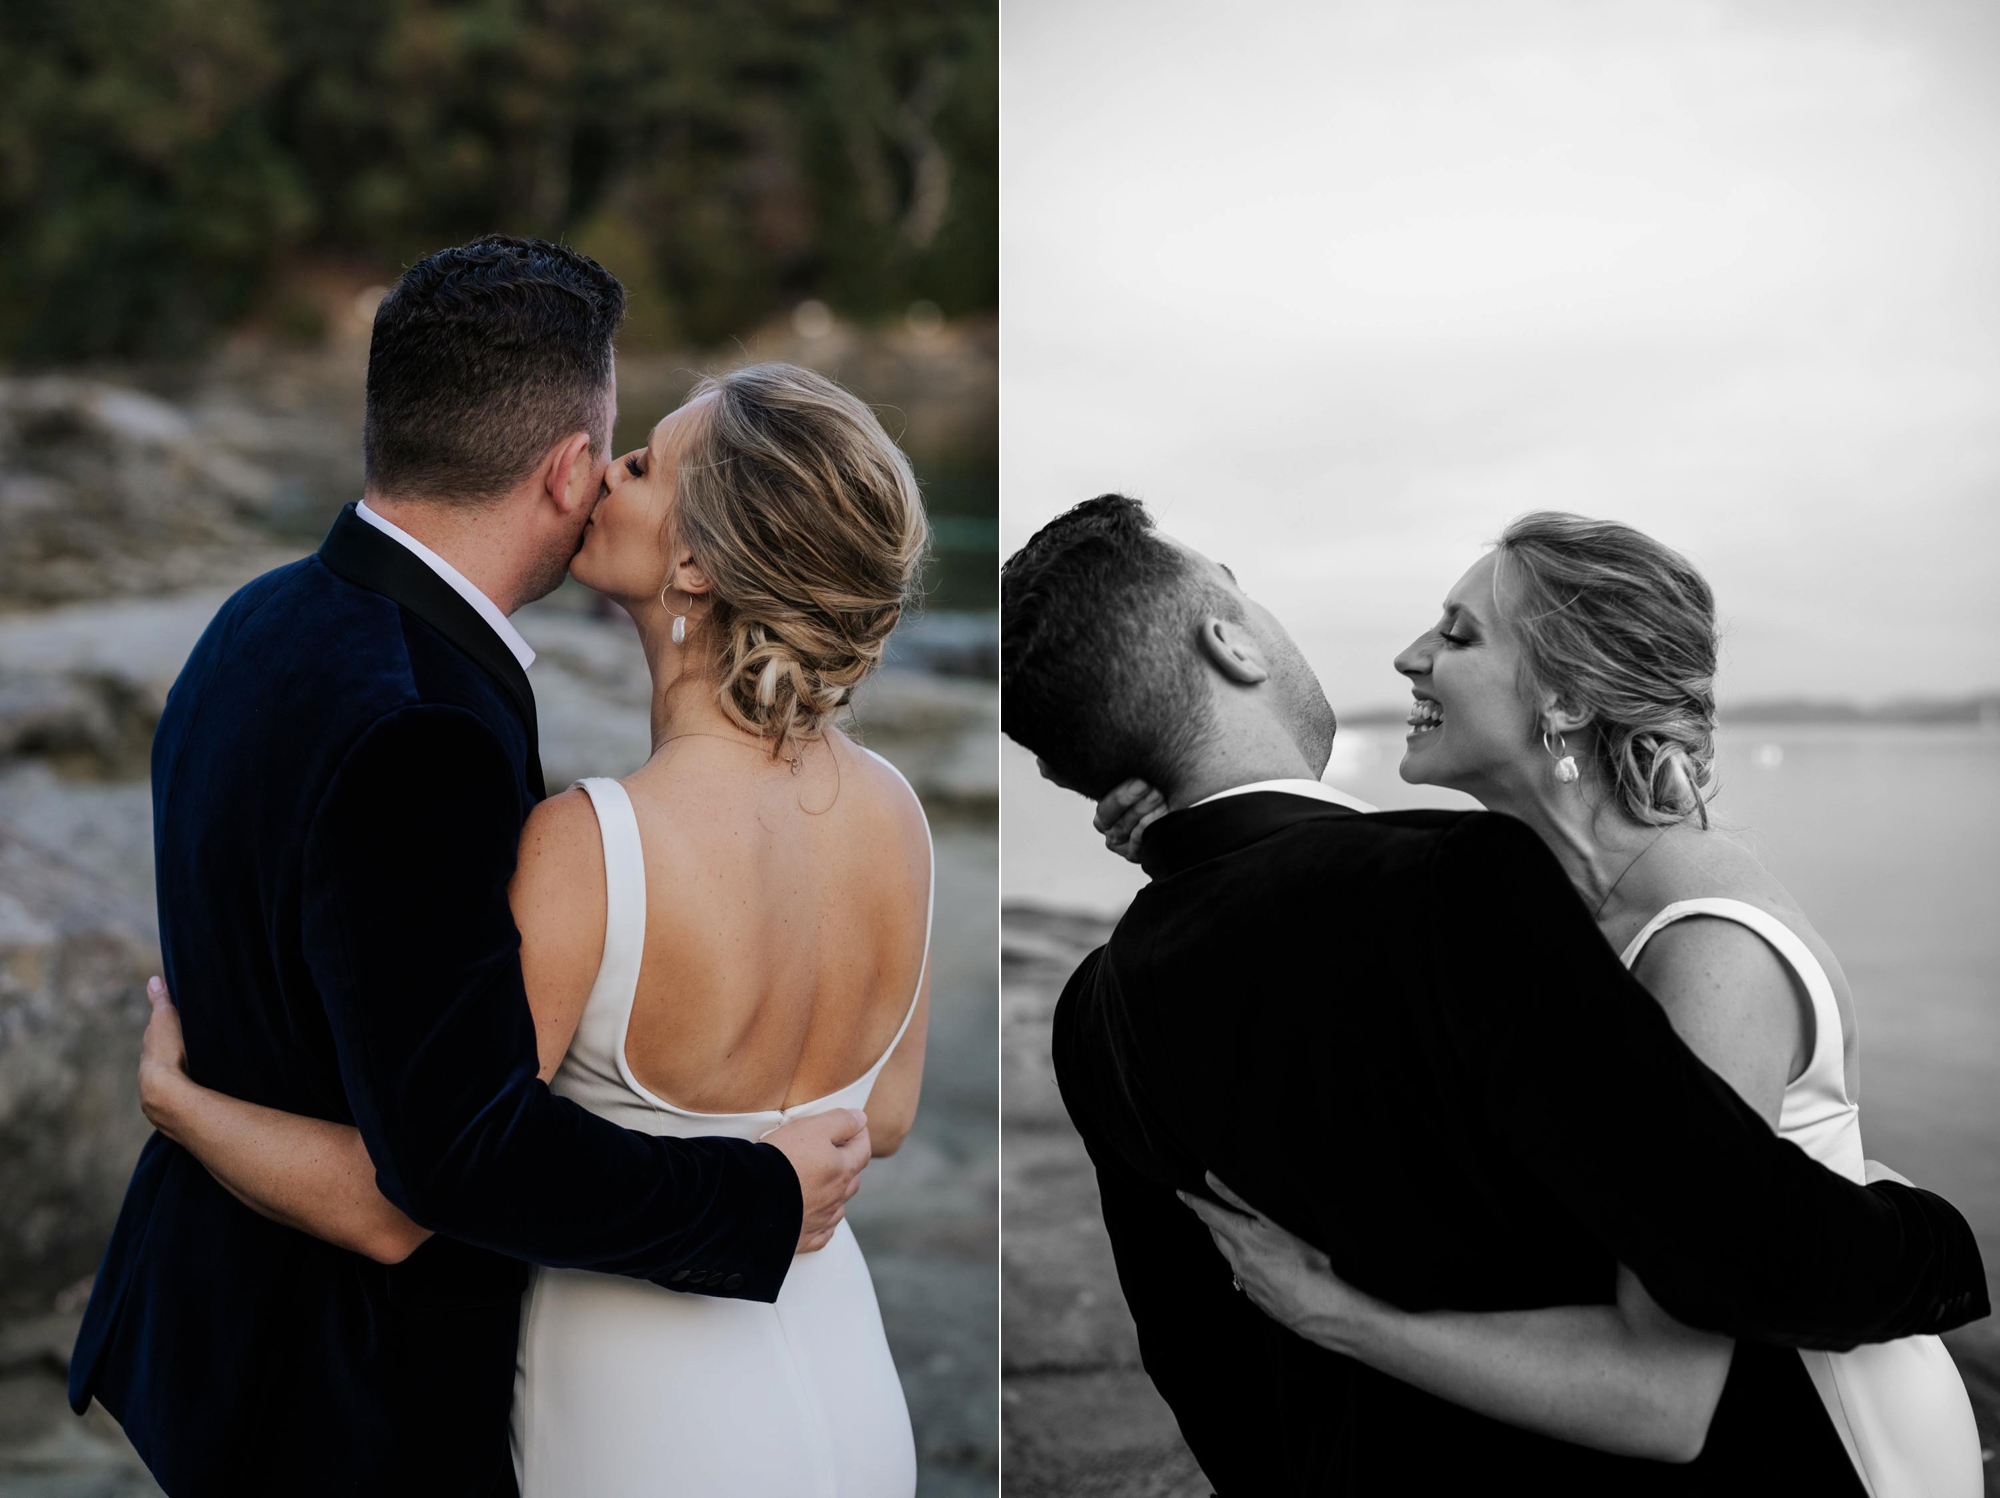 Lowkey Vancouver Island Wedding Photographer based in Victoria